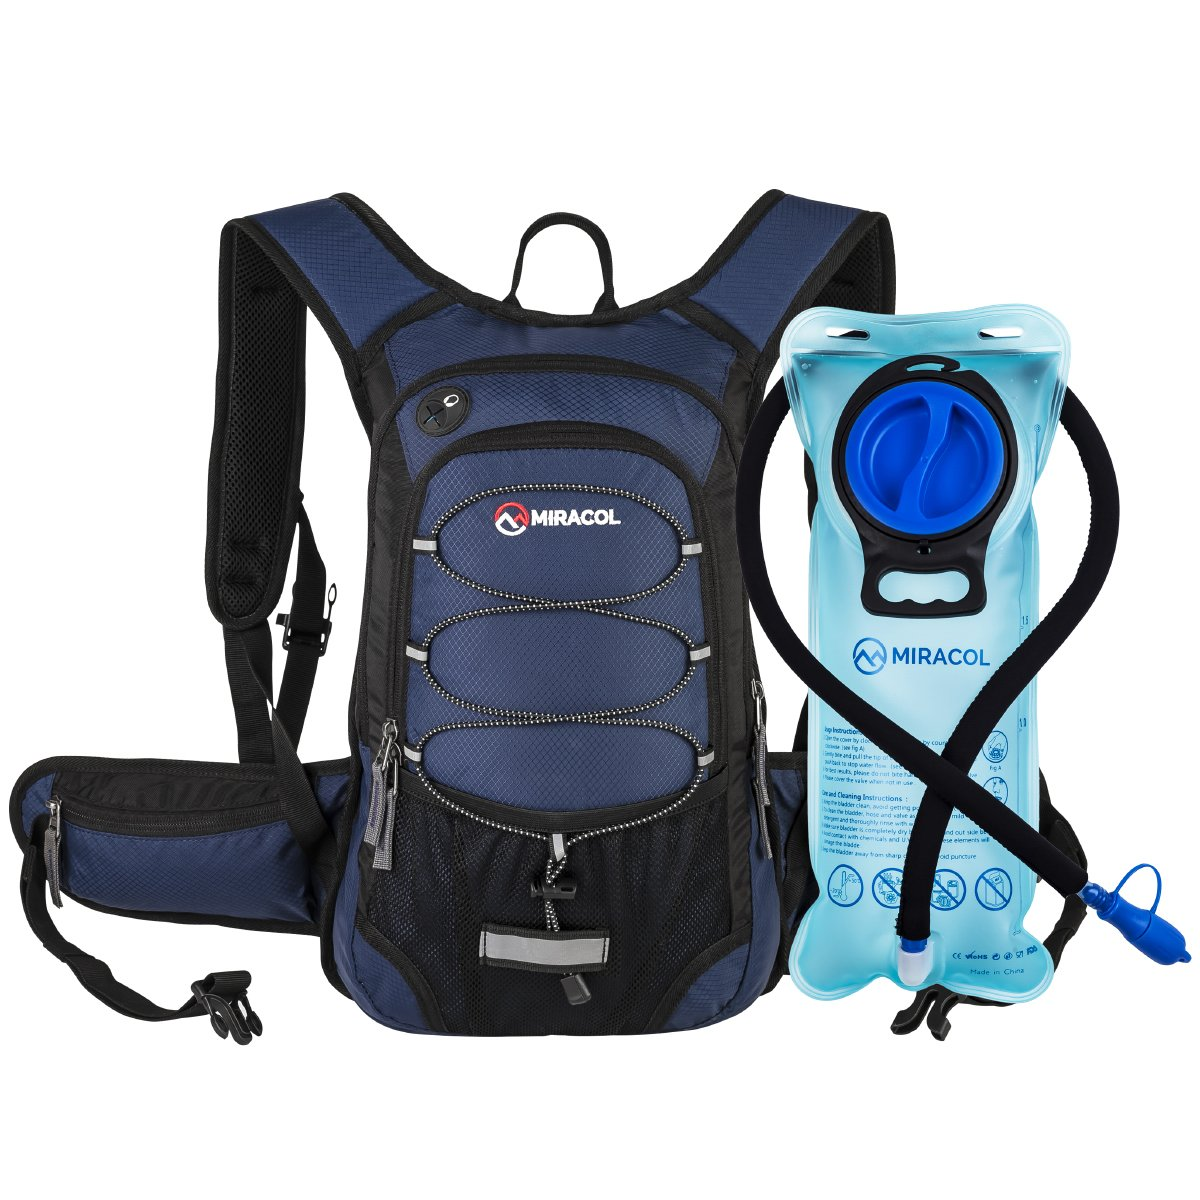 MIRACOL Hydration Backpack with 2L BPA Free Water Bladder, Thermal Insulation Pack Keeps Liquid Cool up to 4 Hours, Perfect Outdoor Gear for Hiking, Cycling, Camping, Running (Navy Blue) by MIRACOL